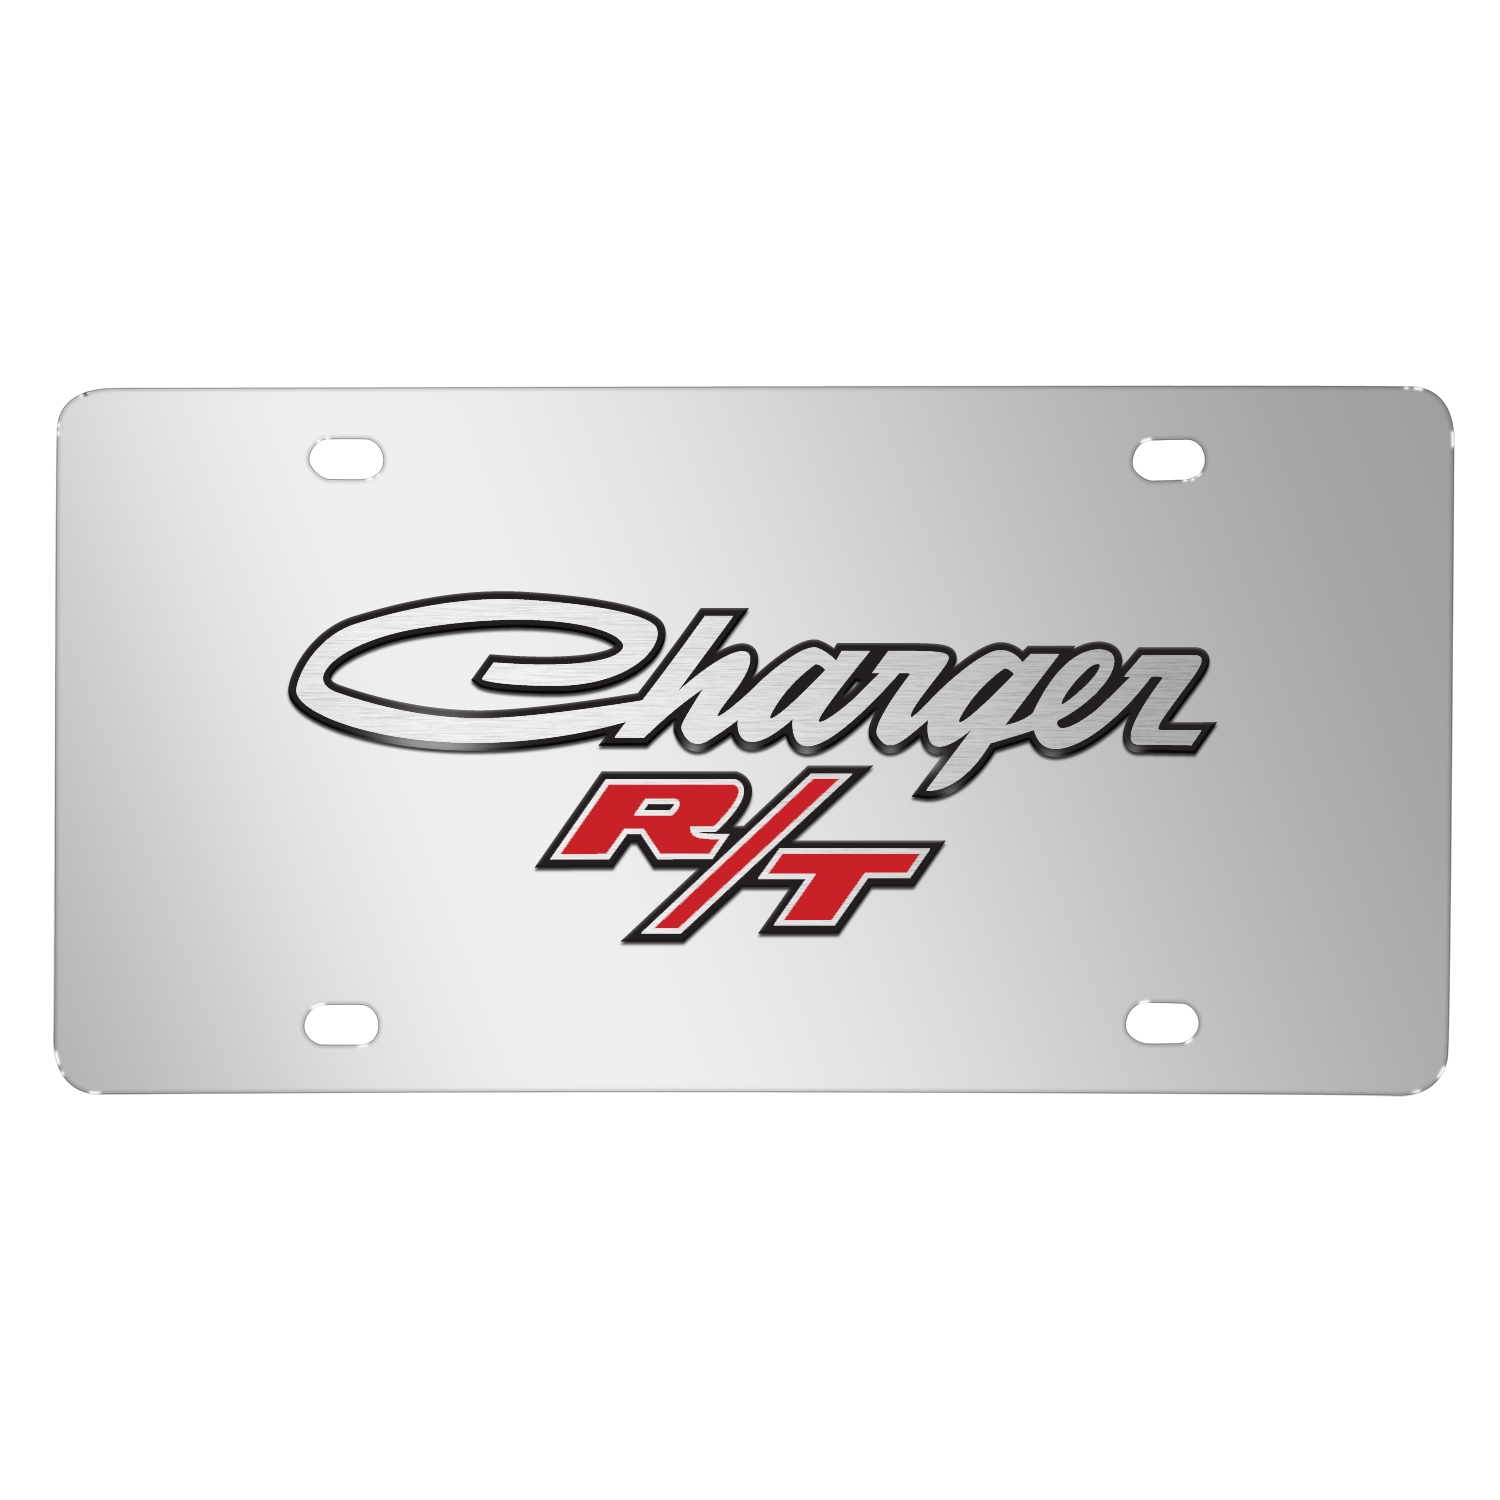 Dodge Charger R/T Classic 3D Logo on Chrome Stainless Steel License Plate